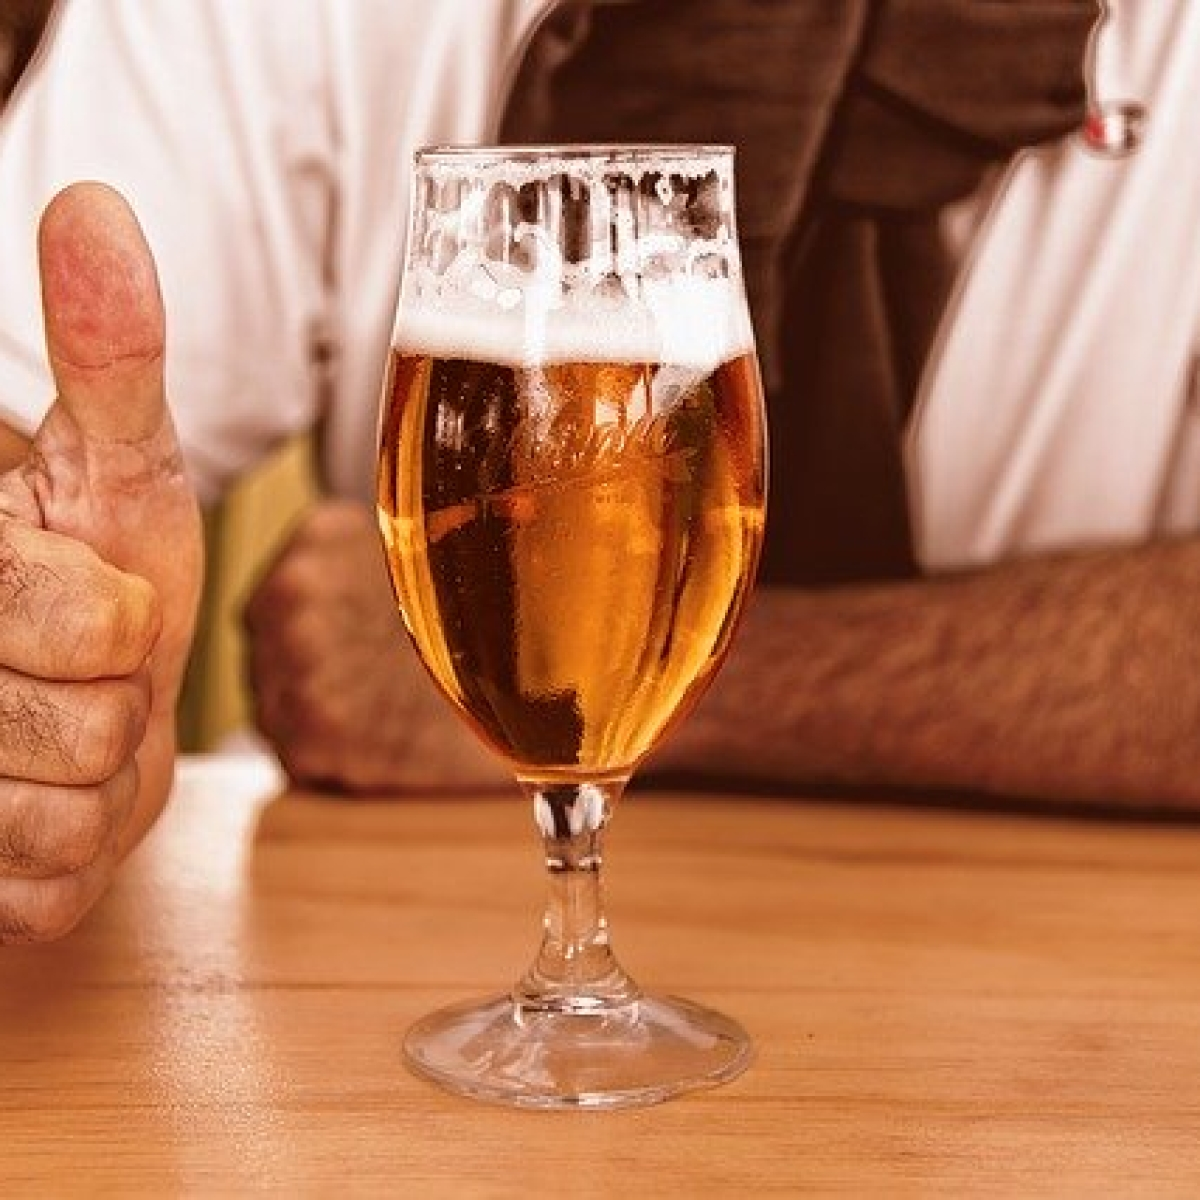 Good News for tipplers in Mumbai: BMC allows home delivery of liquor